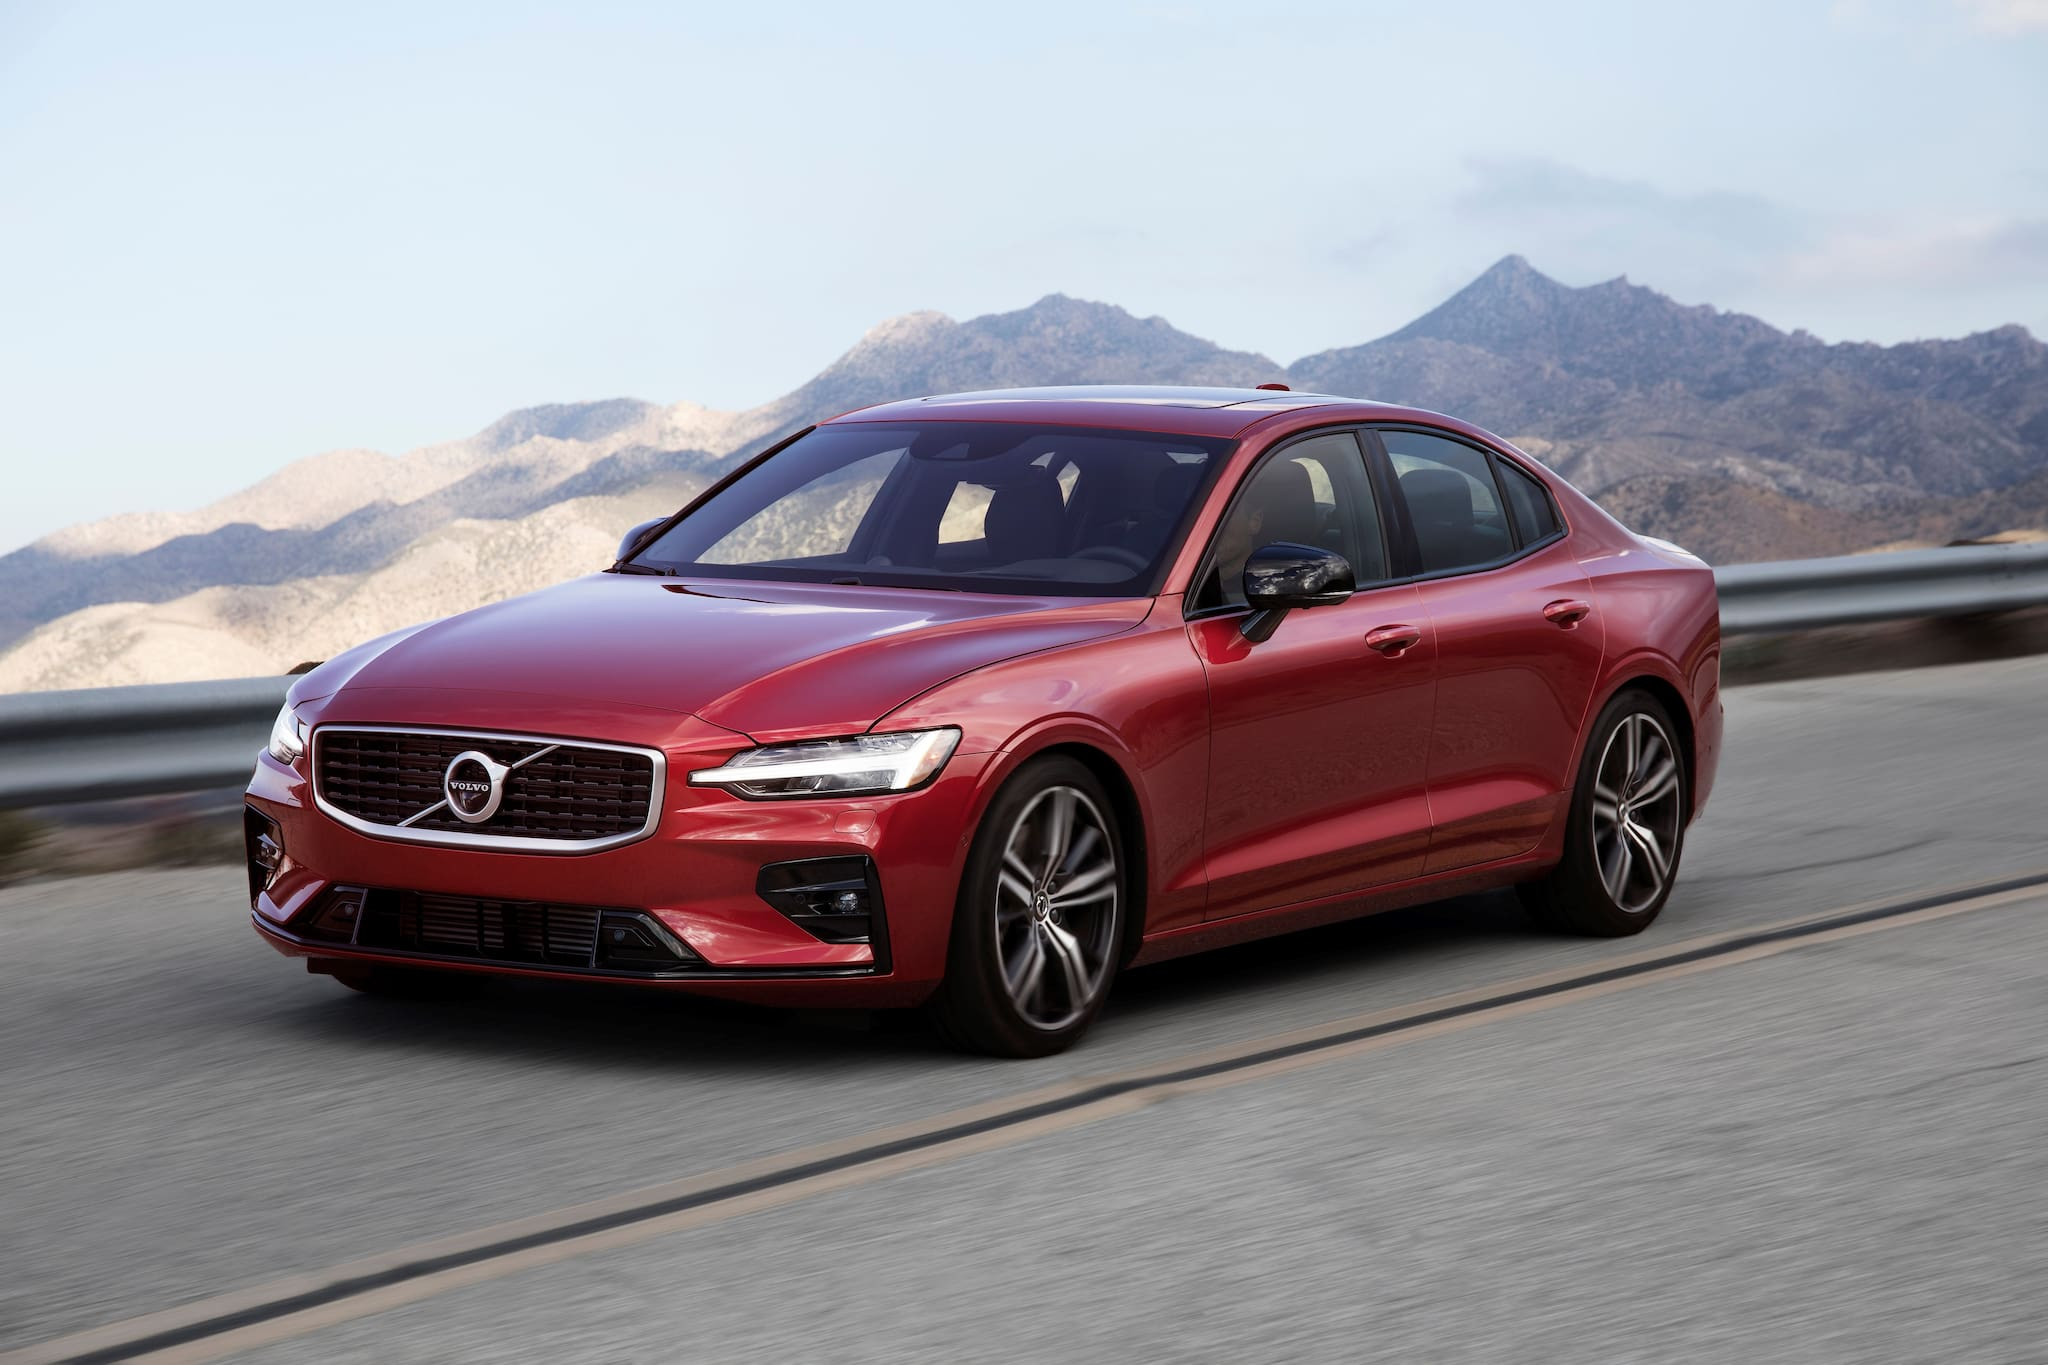 new volvo s60 will come to india without a diesel engine; could be a